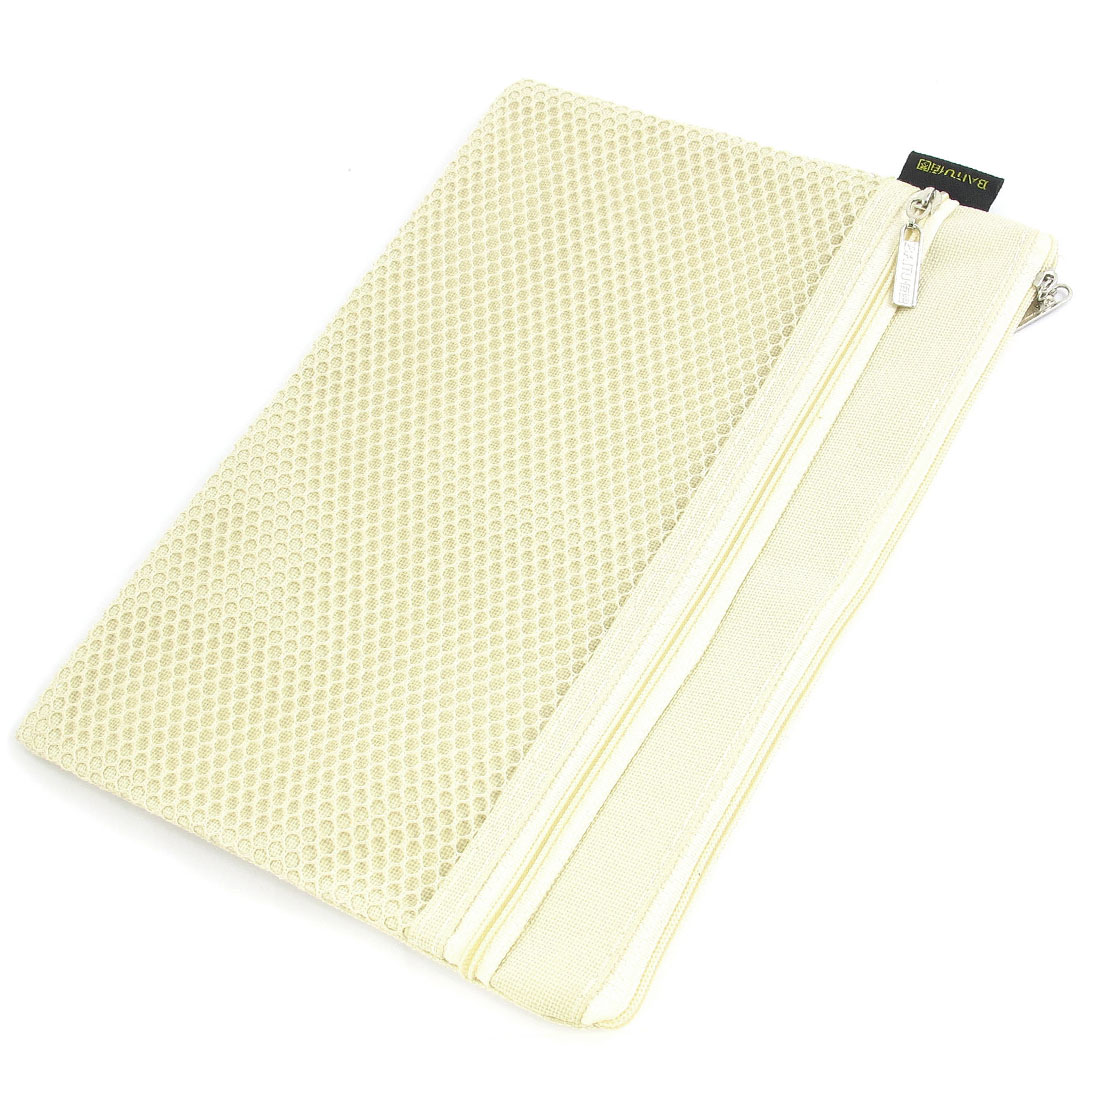 Zipper Closure 2 Pockets Canvas A5 File Bag Document Holder Beige